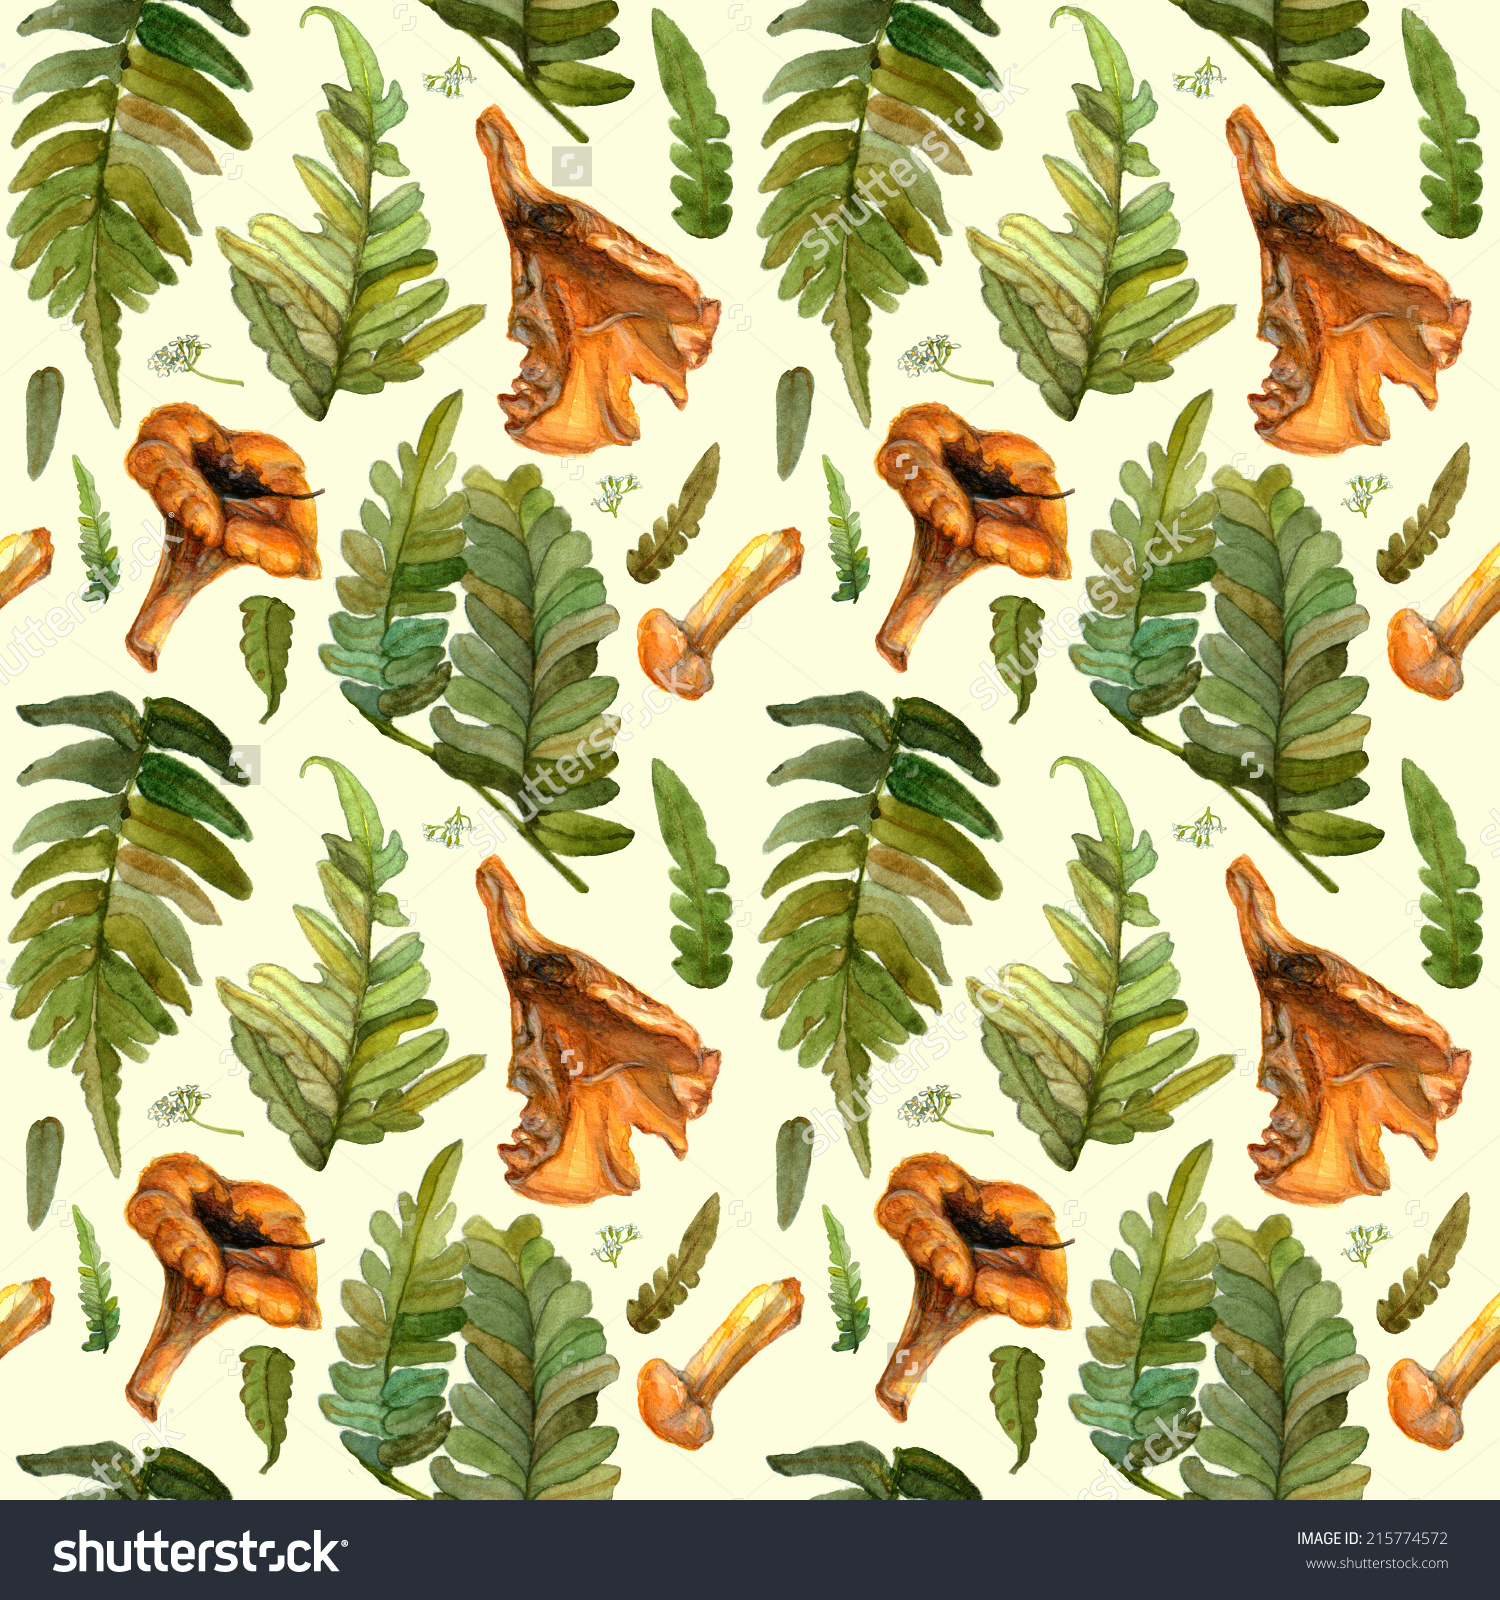 Watercolor Seamless Pattern Green Fern Leaves Stock Illustration.